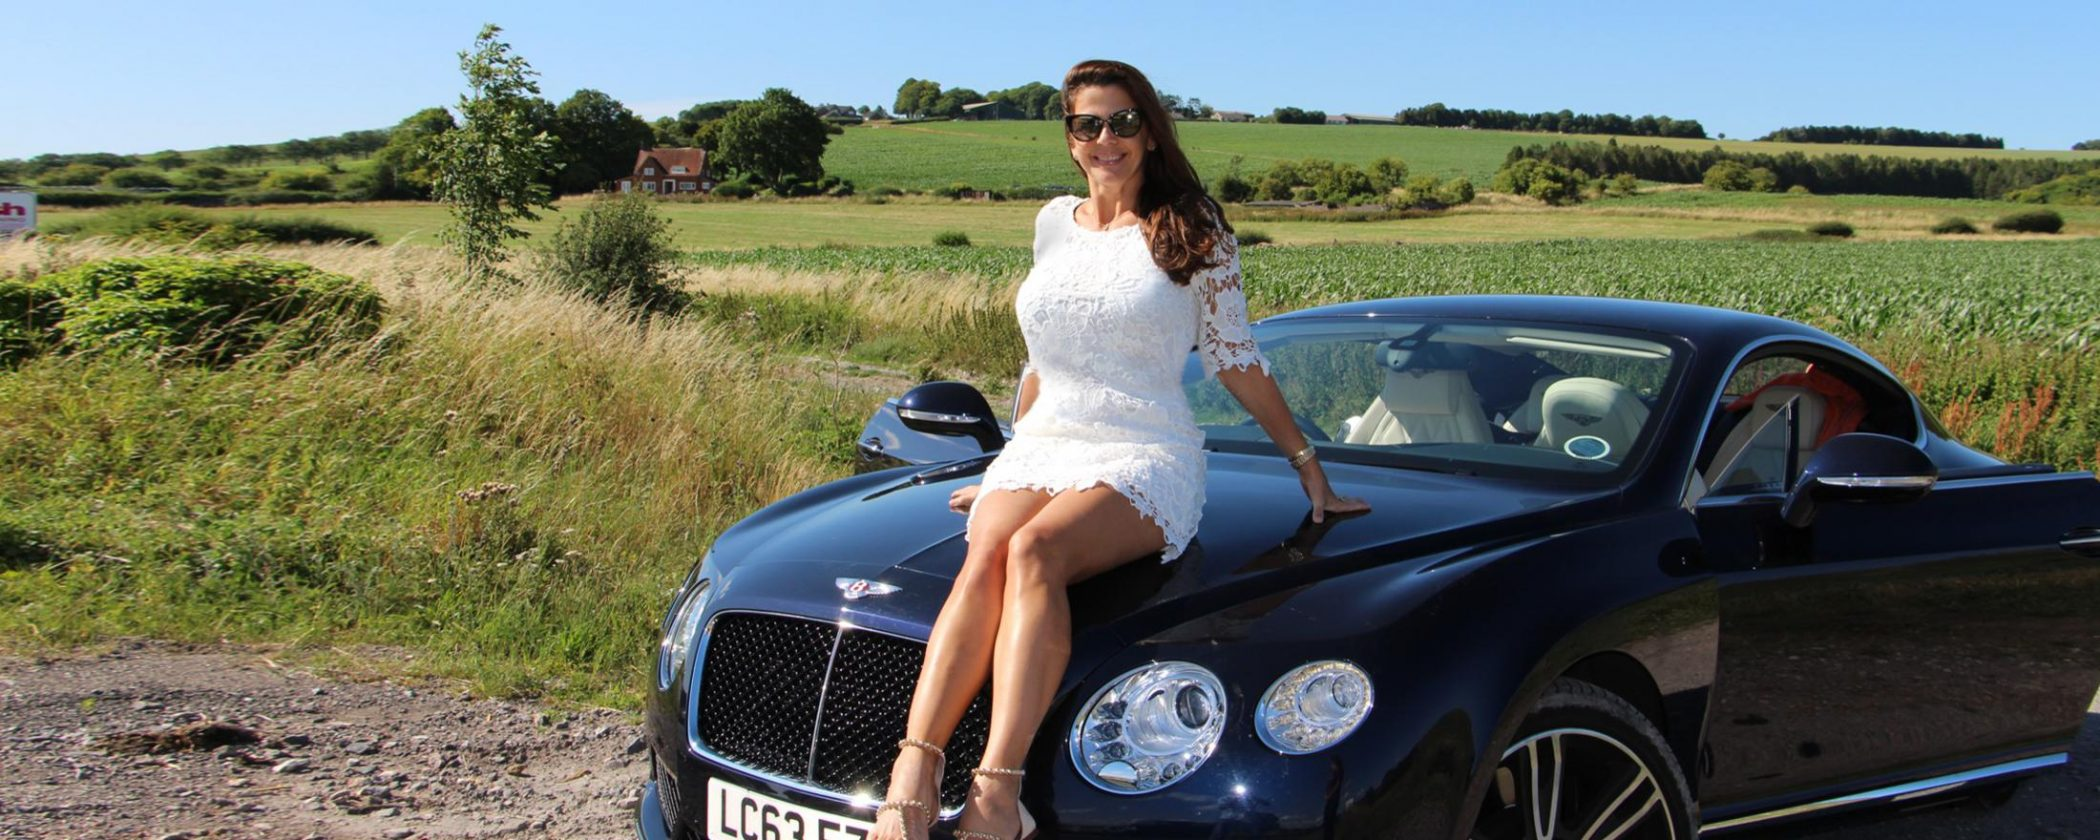 Fancy and elegant woman with her luxury car in the UK, by Omnimundi